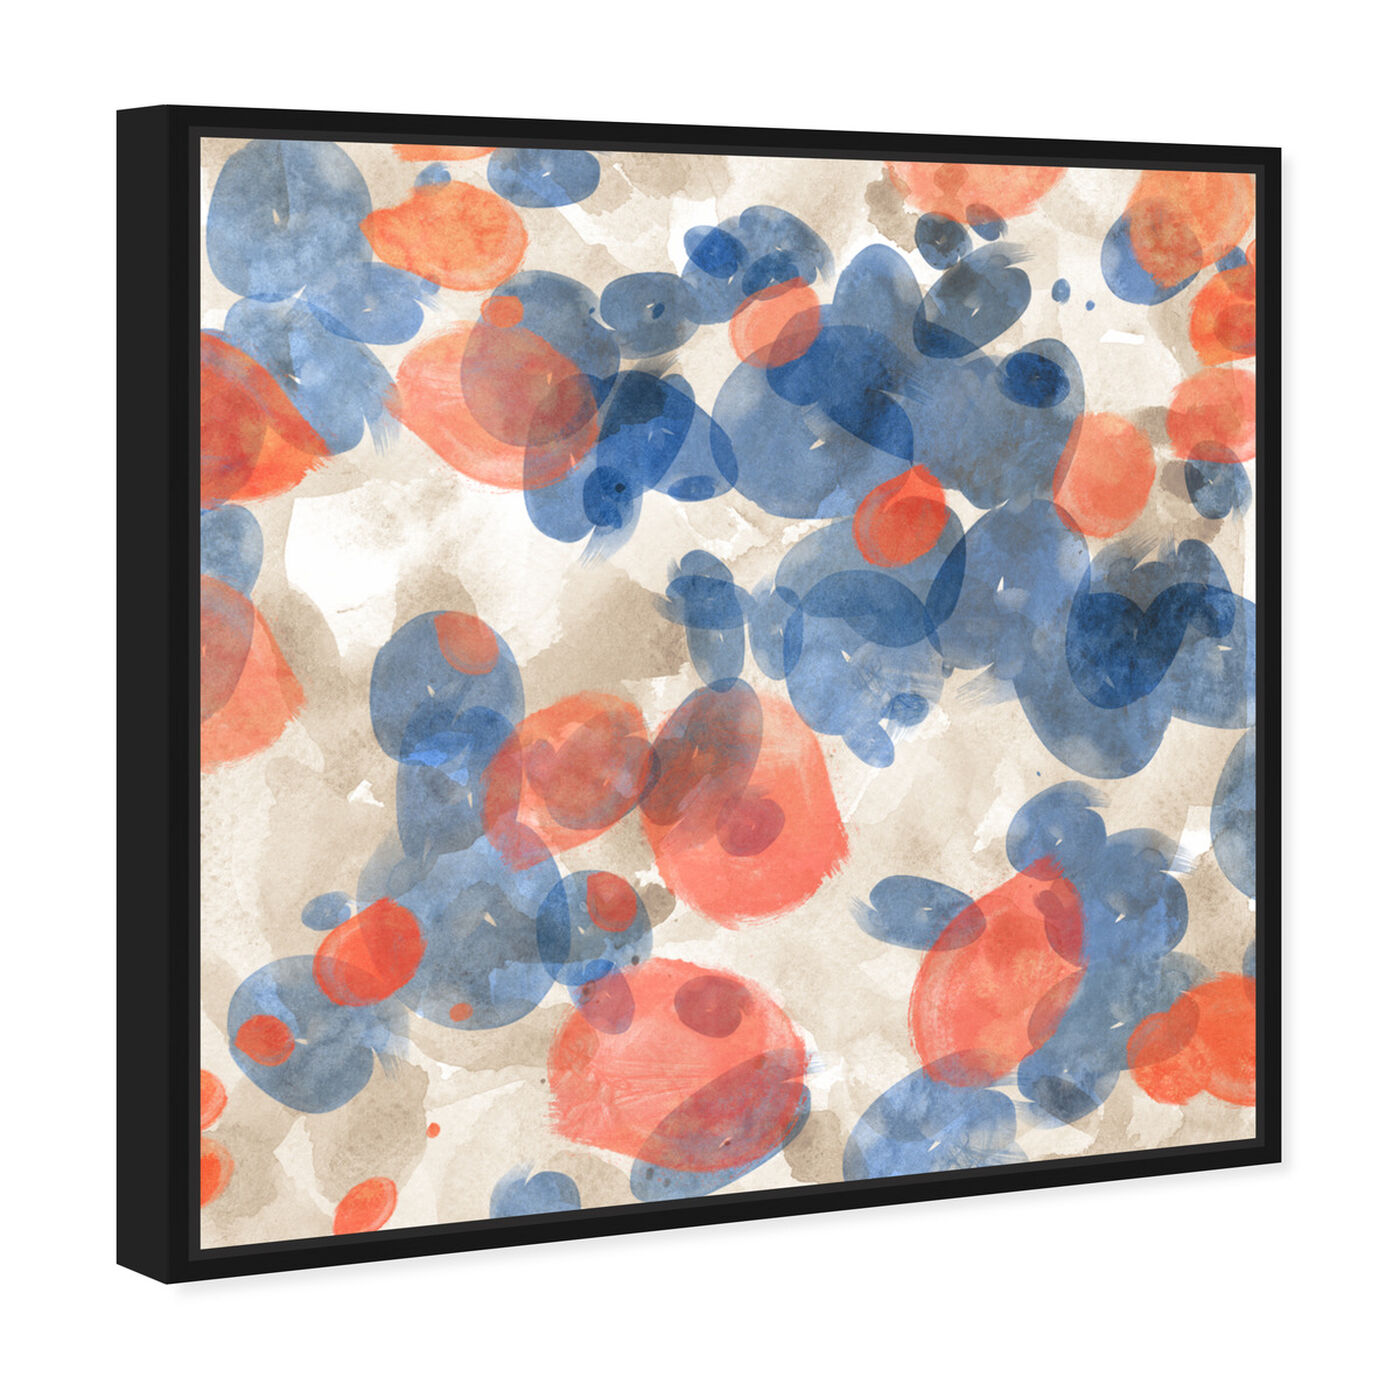 Angled view of Floating Petals featuring abstract and paint art.